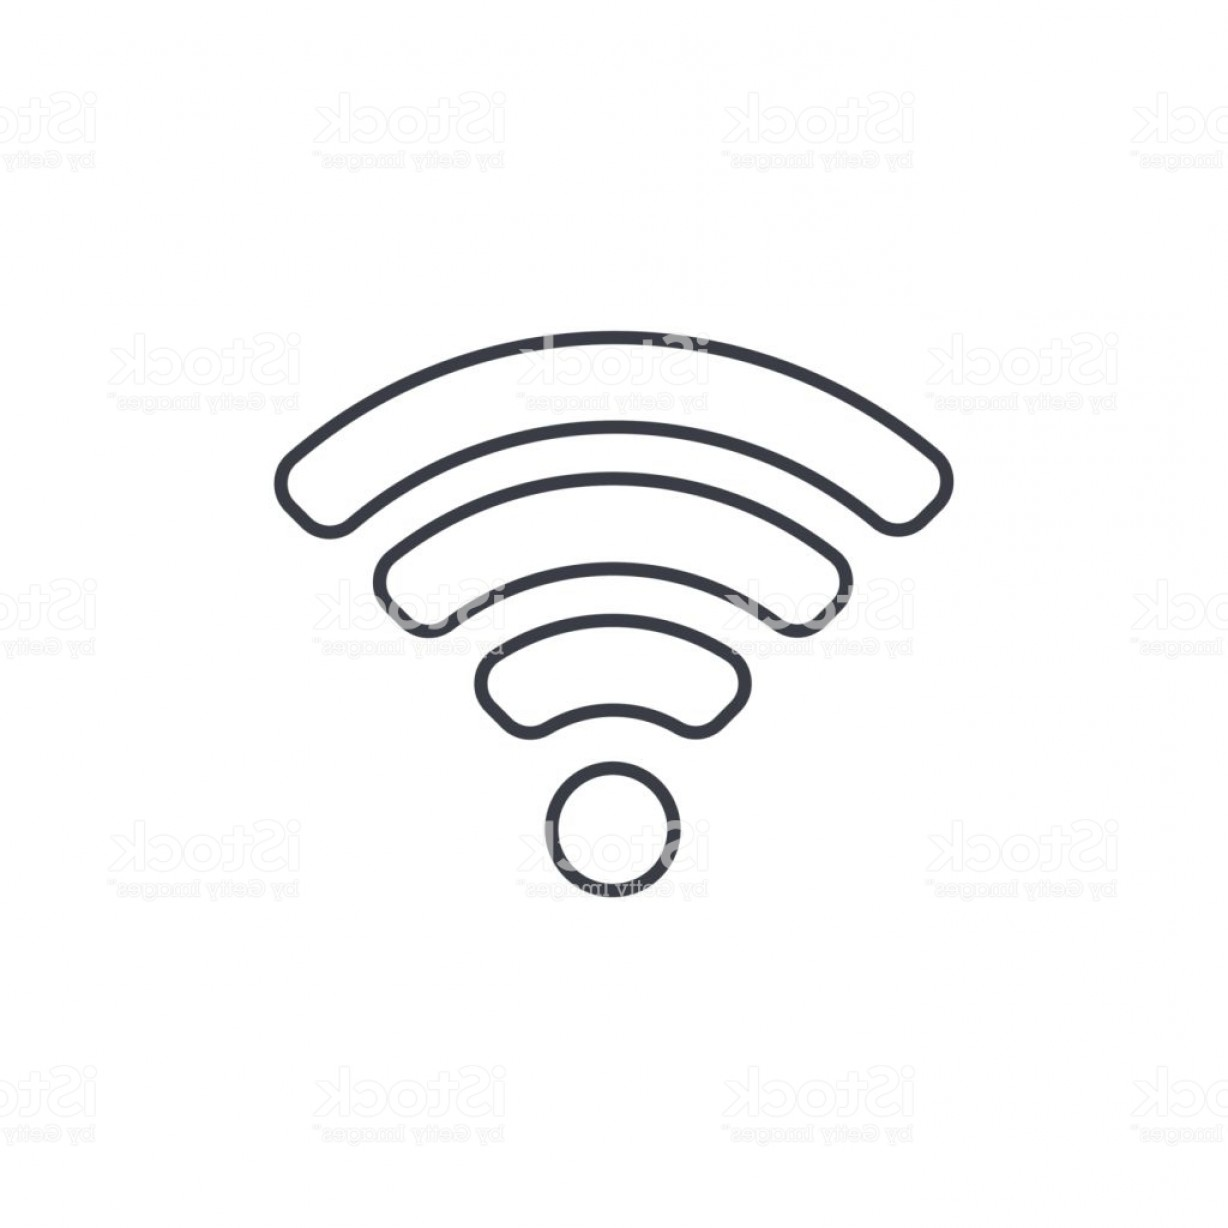 Wifi Symbol Clip Art Vector: Wi Fi Signal Thin Line Icon Linear Vector Symbol Gm